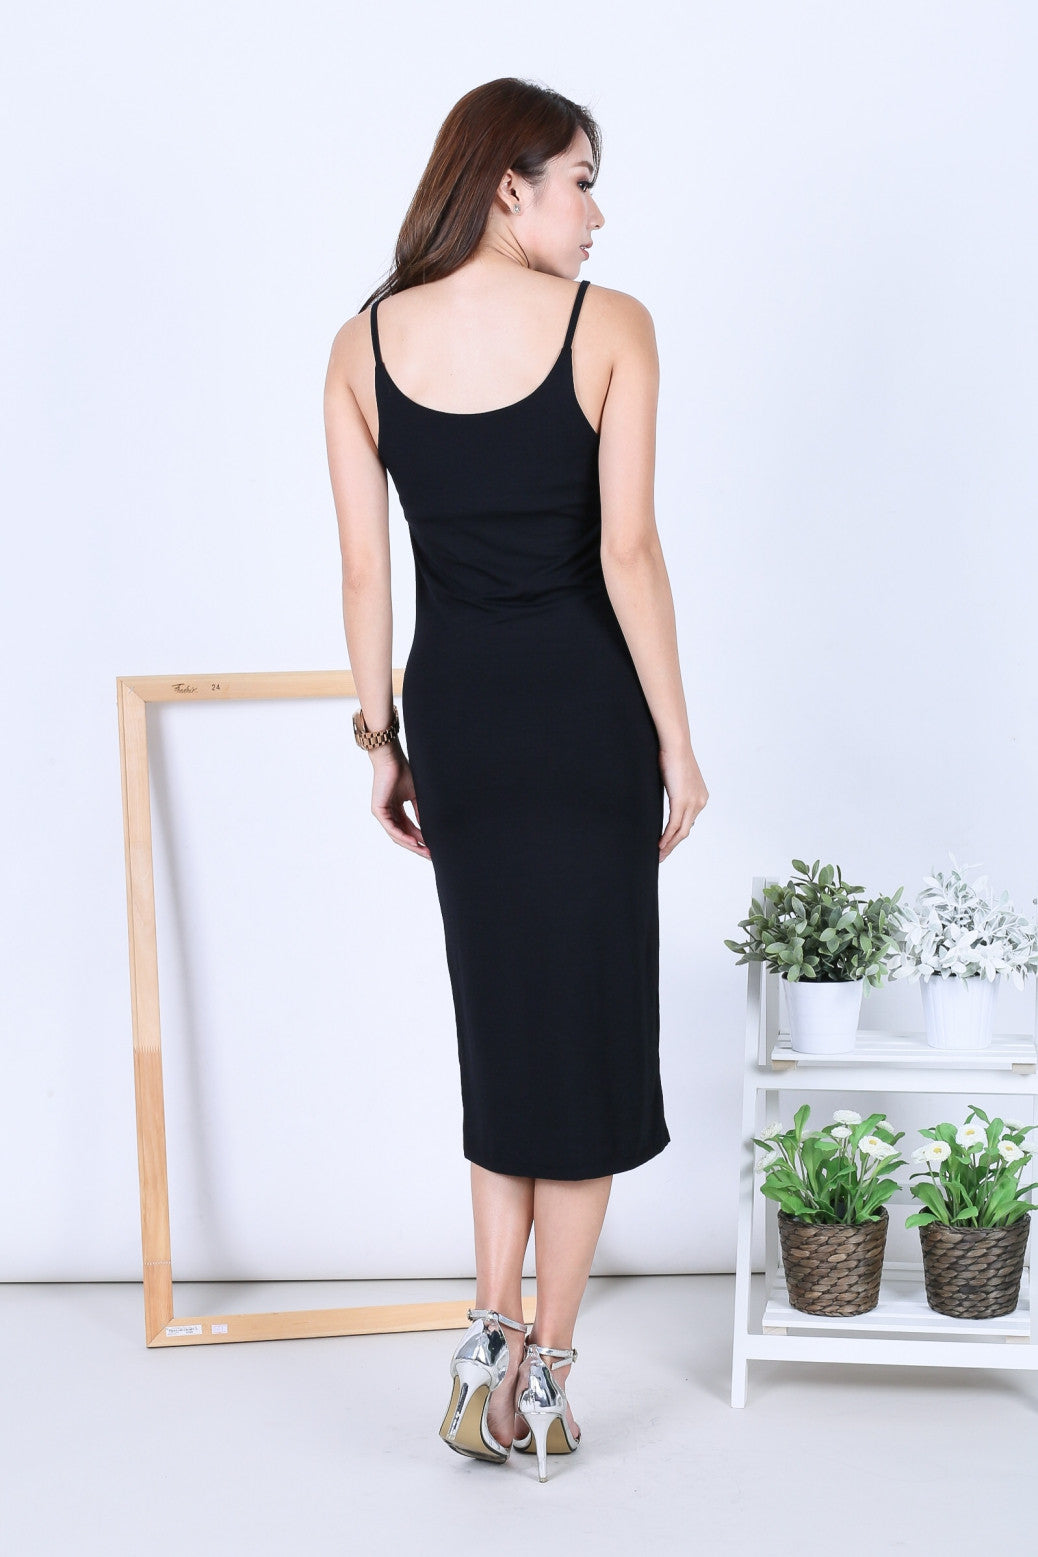 FEL BASIC SPAG MIDI IN BLACK - TOPAZETTE